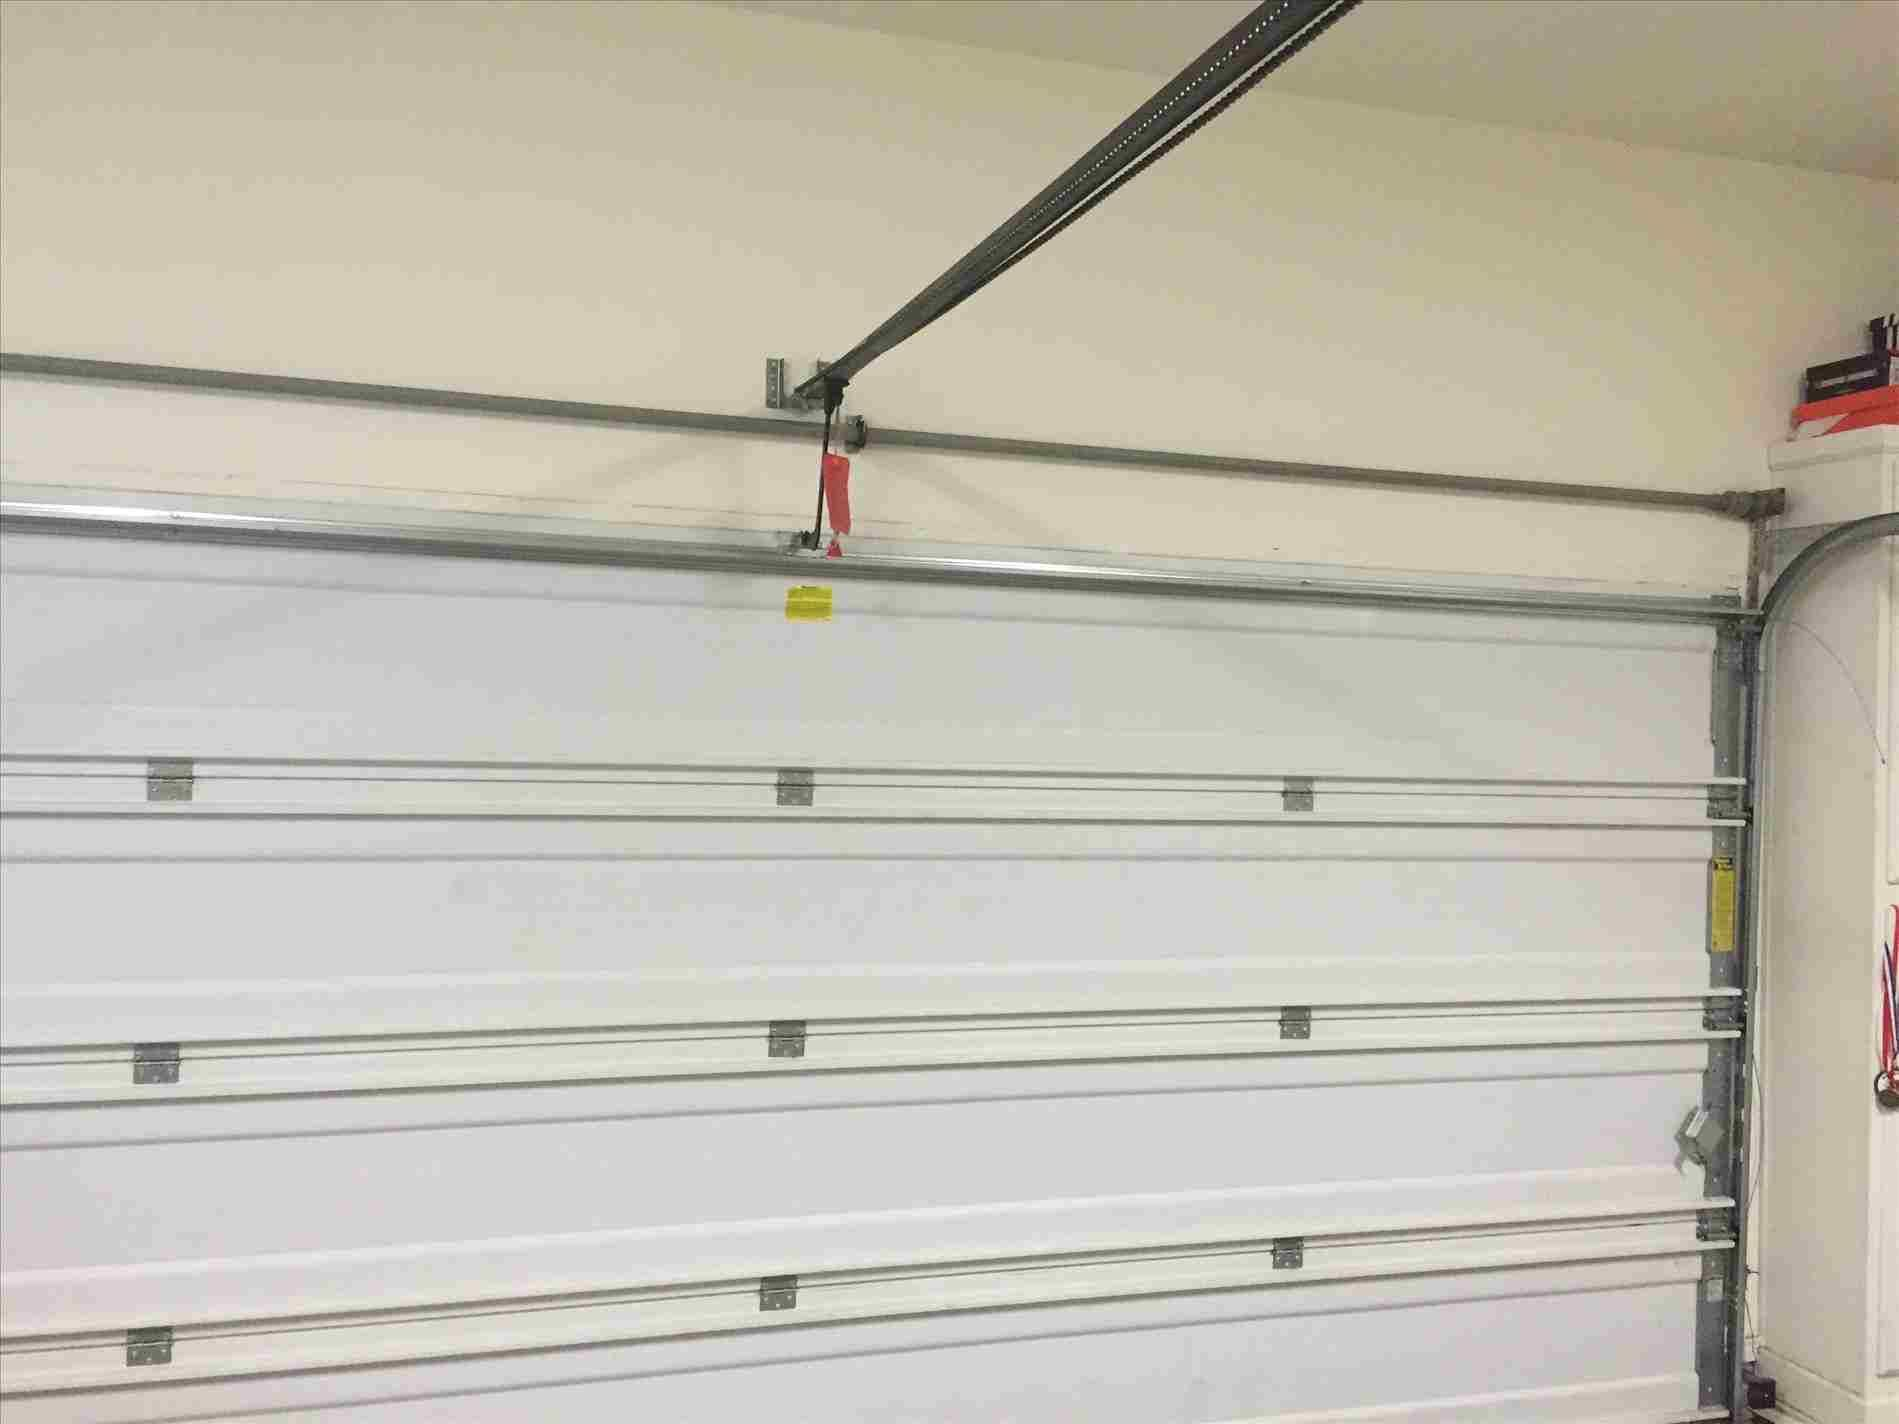 Wayne Dalton Garage Door Repair Uncategorized Wayne Dalton Taupe Garage Doors Stunning Wayne Garage Door Springs Garage Door Installation Garage Doors Prices